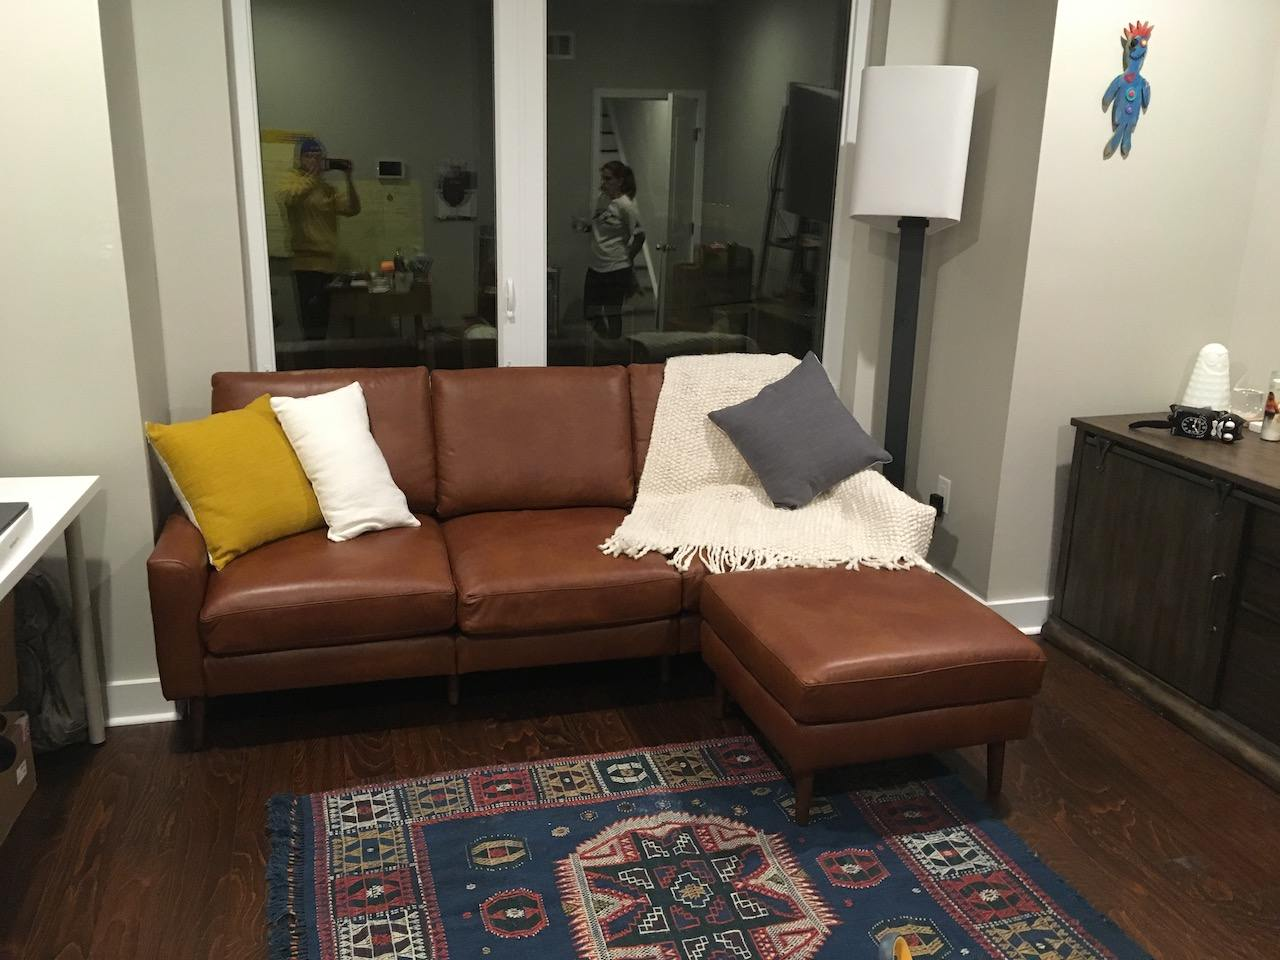 Burrow Nomad Leather Sofa Review| No One Will Believe This Came From A Box